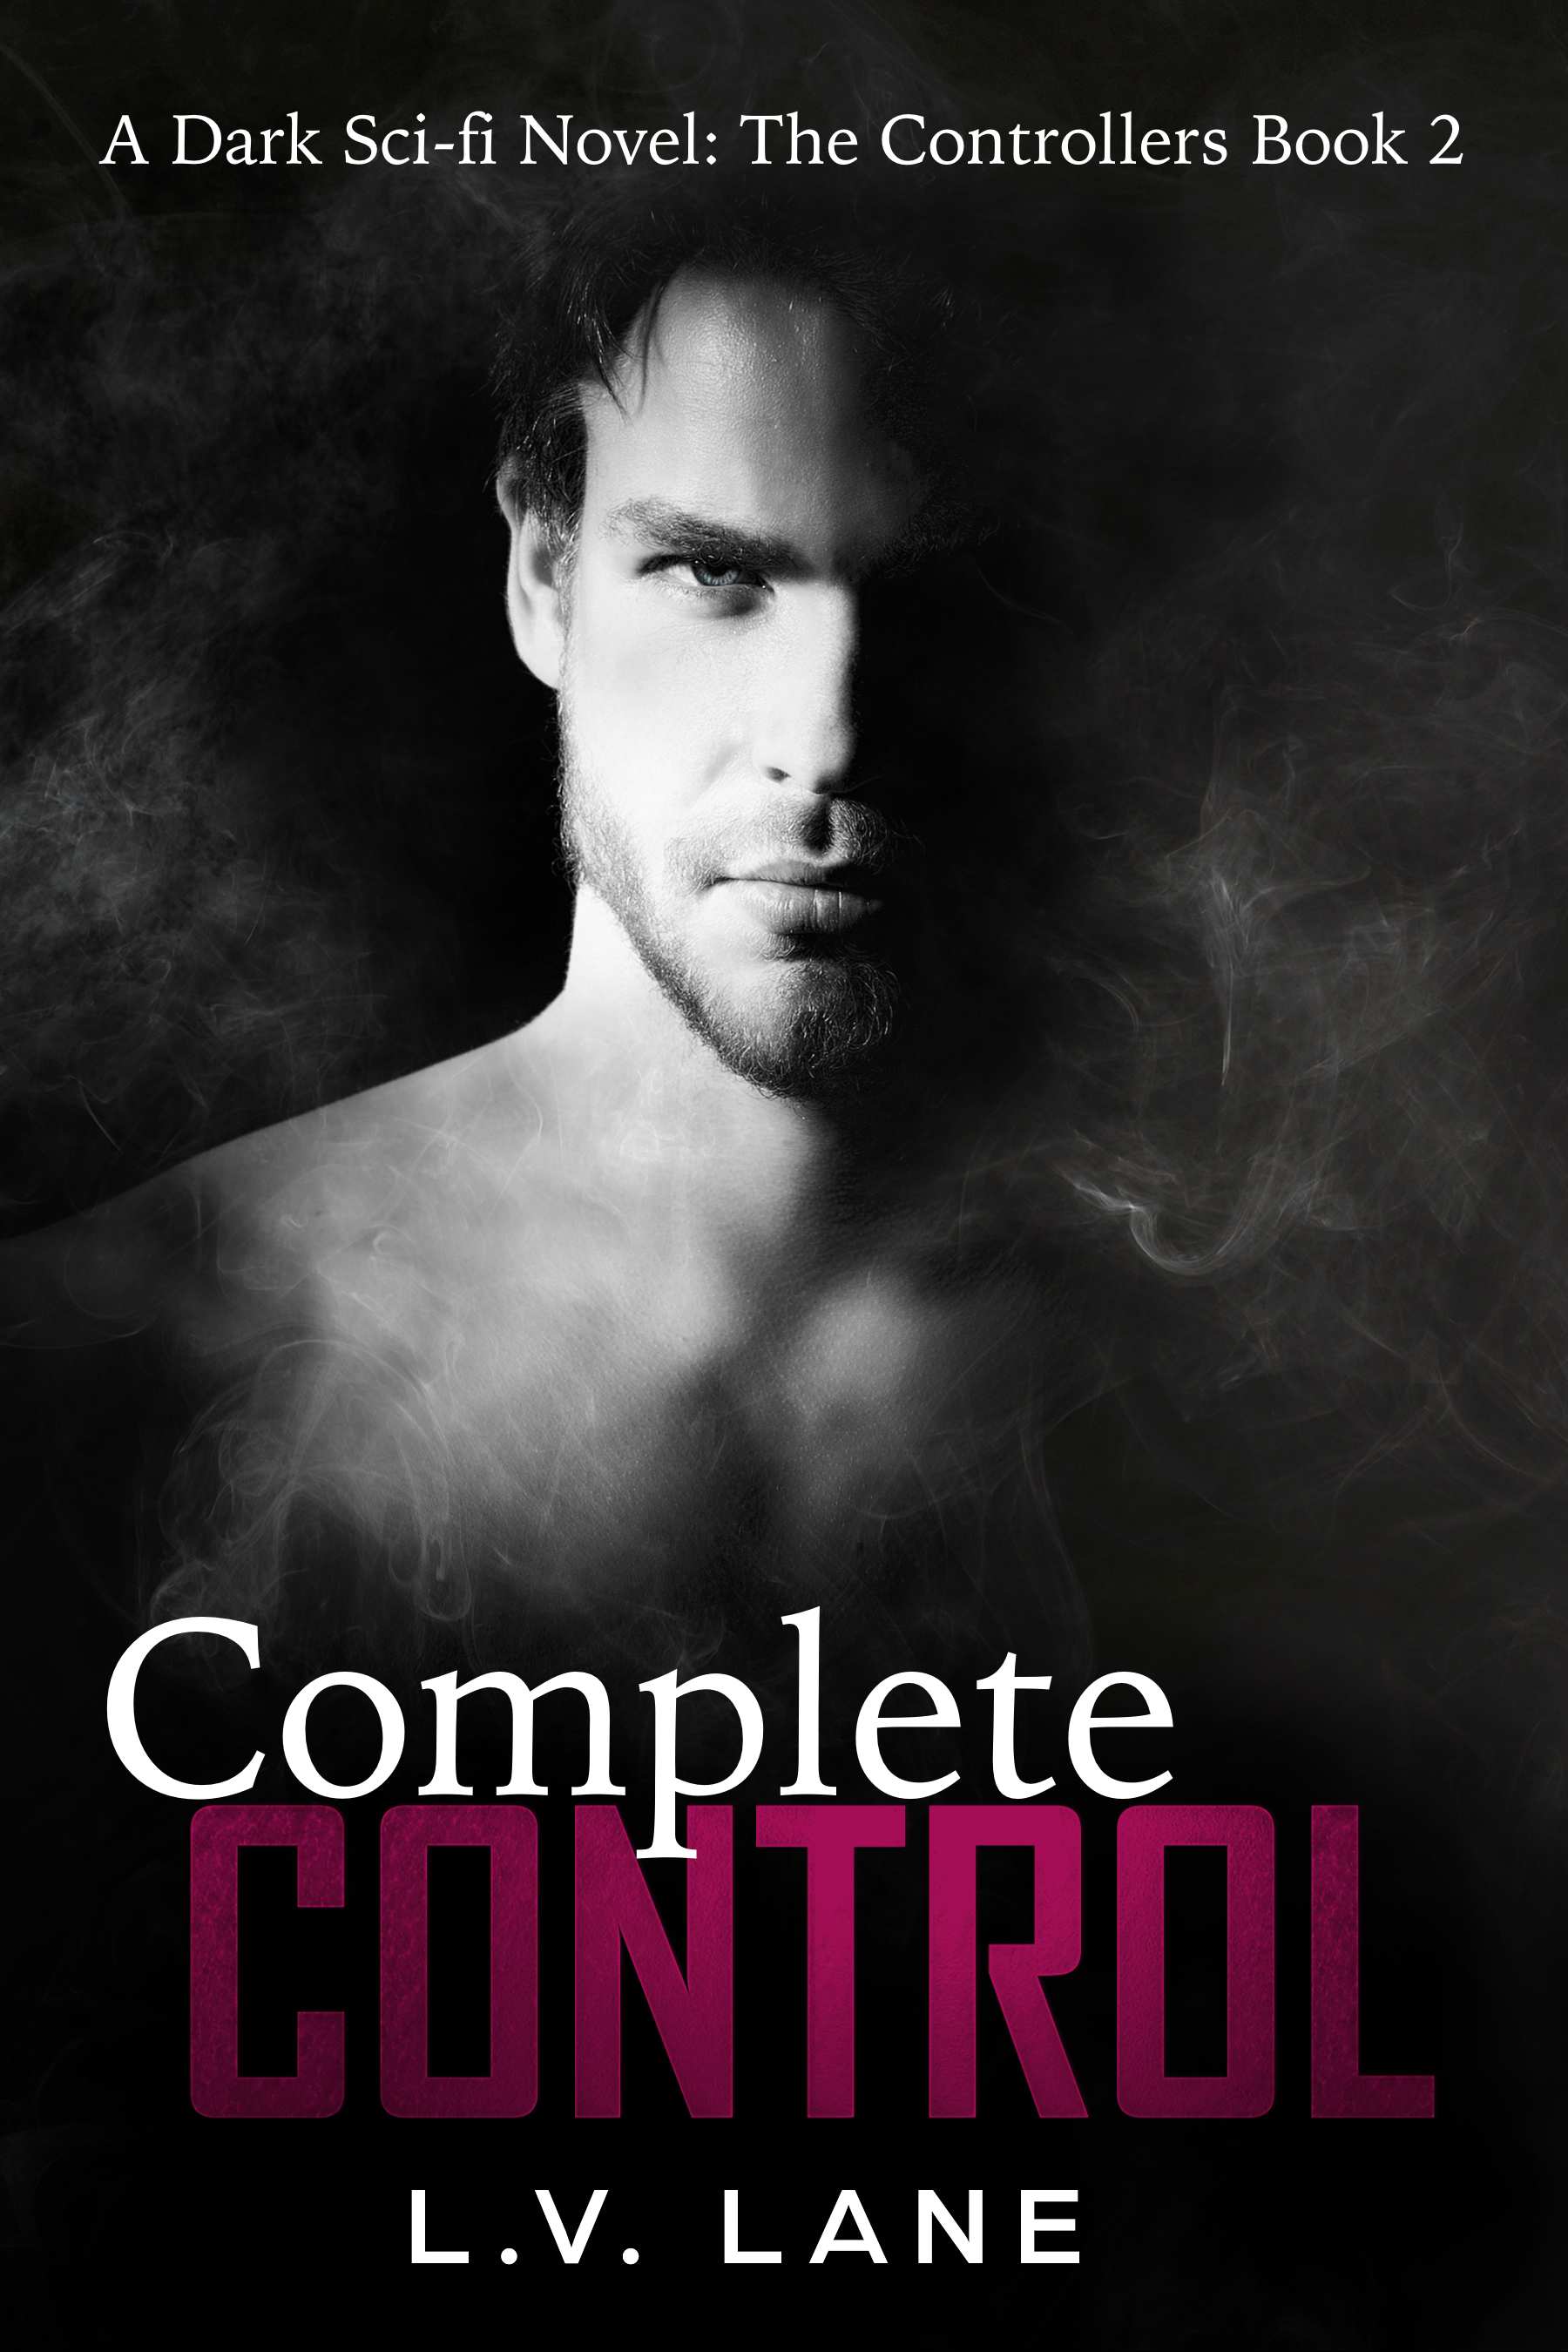 Complete Control: The Controllers Book 2